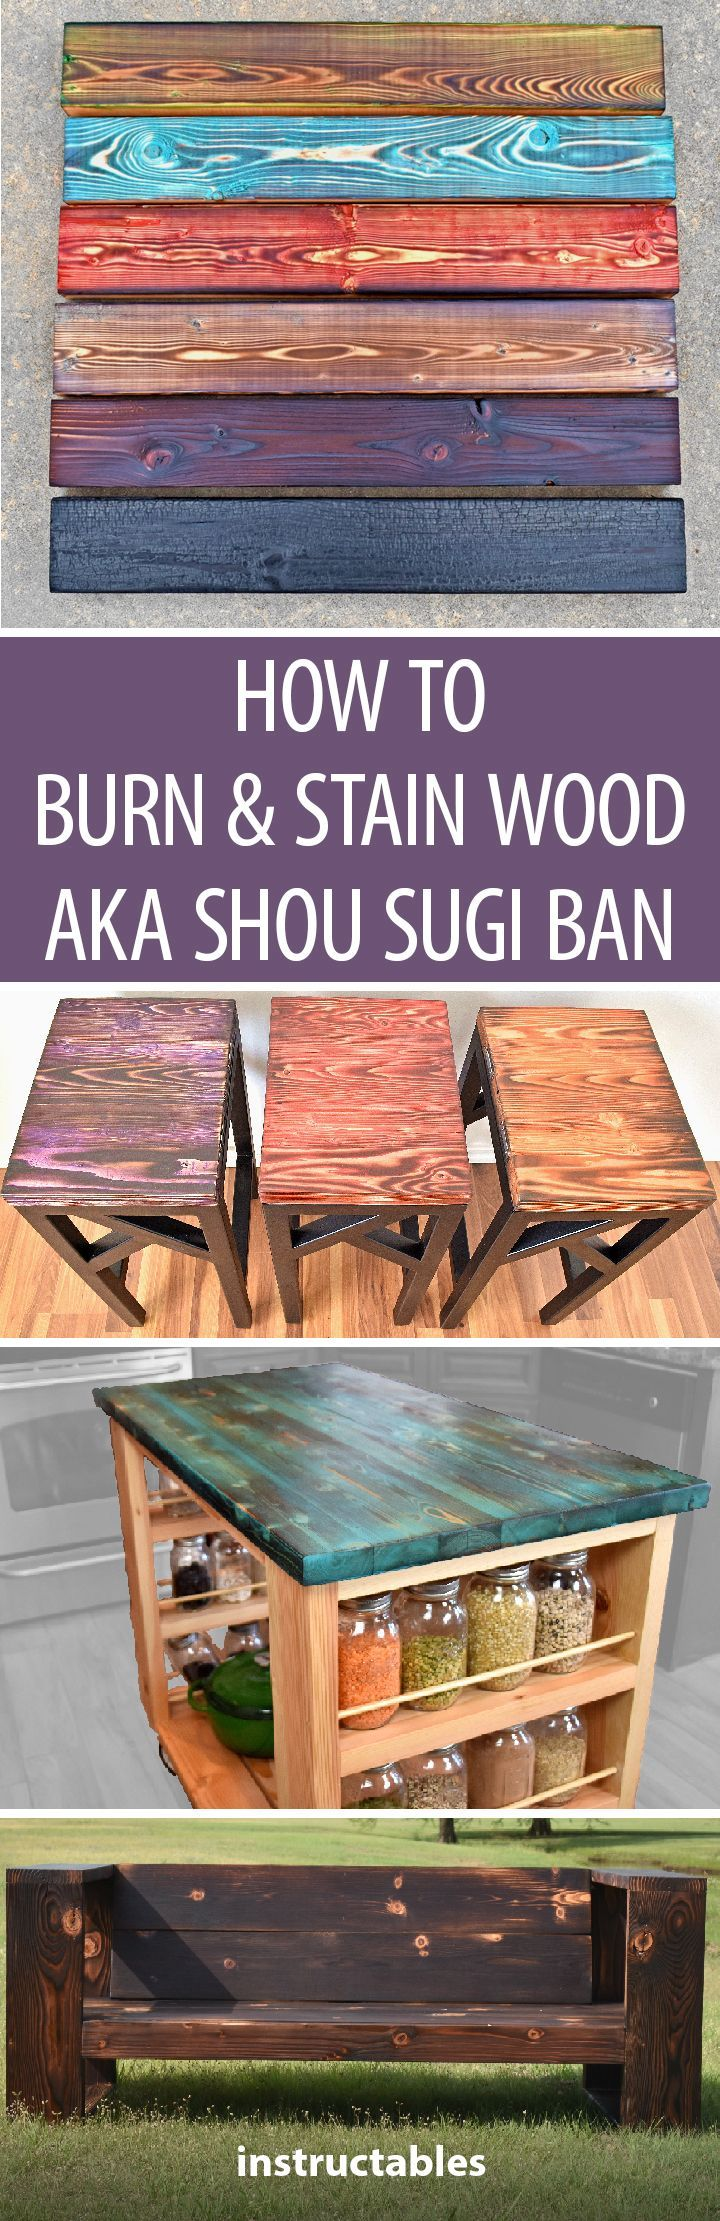 How to Burn & Stain Wood Aka Shou Sugi Ban